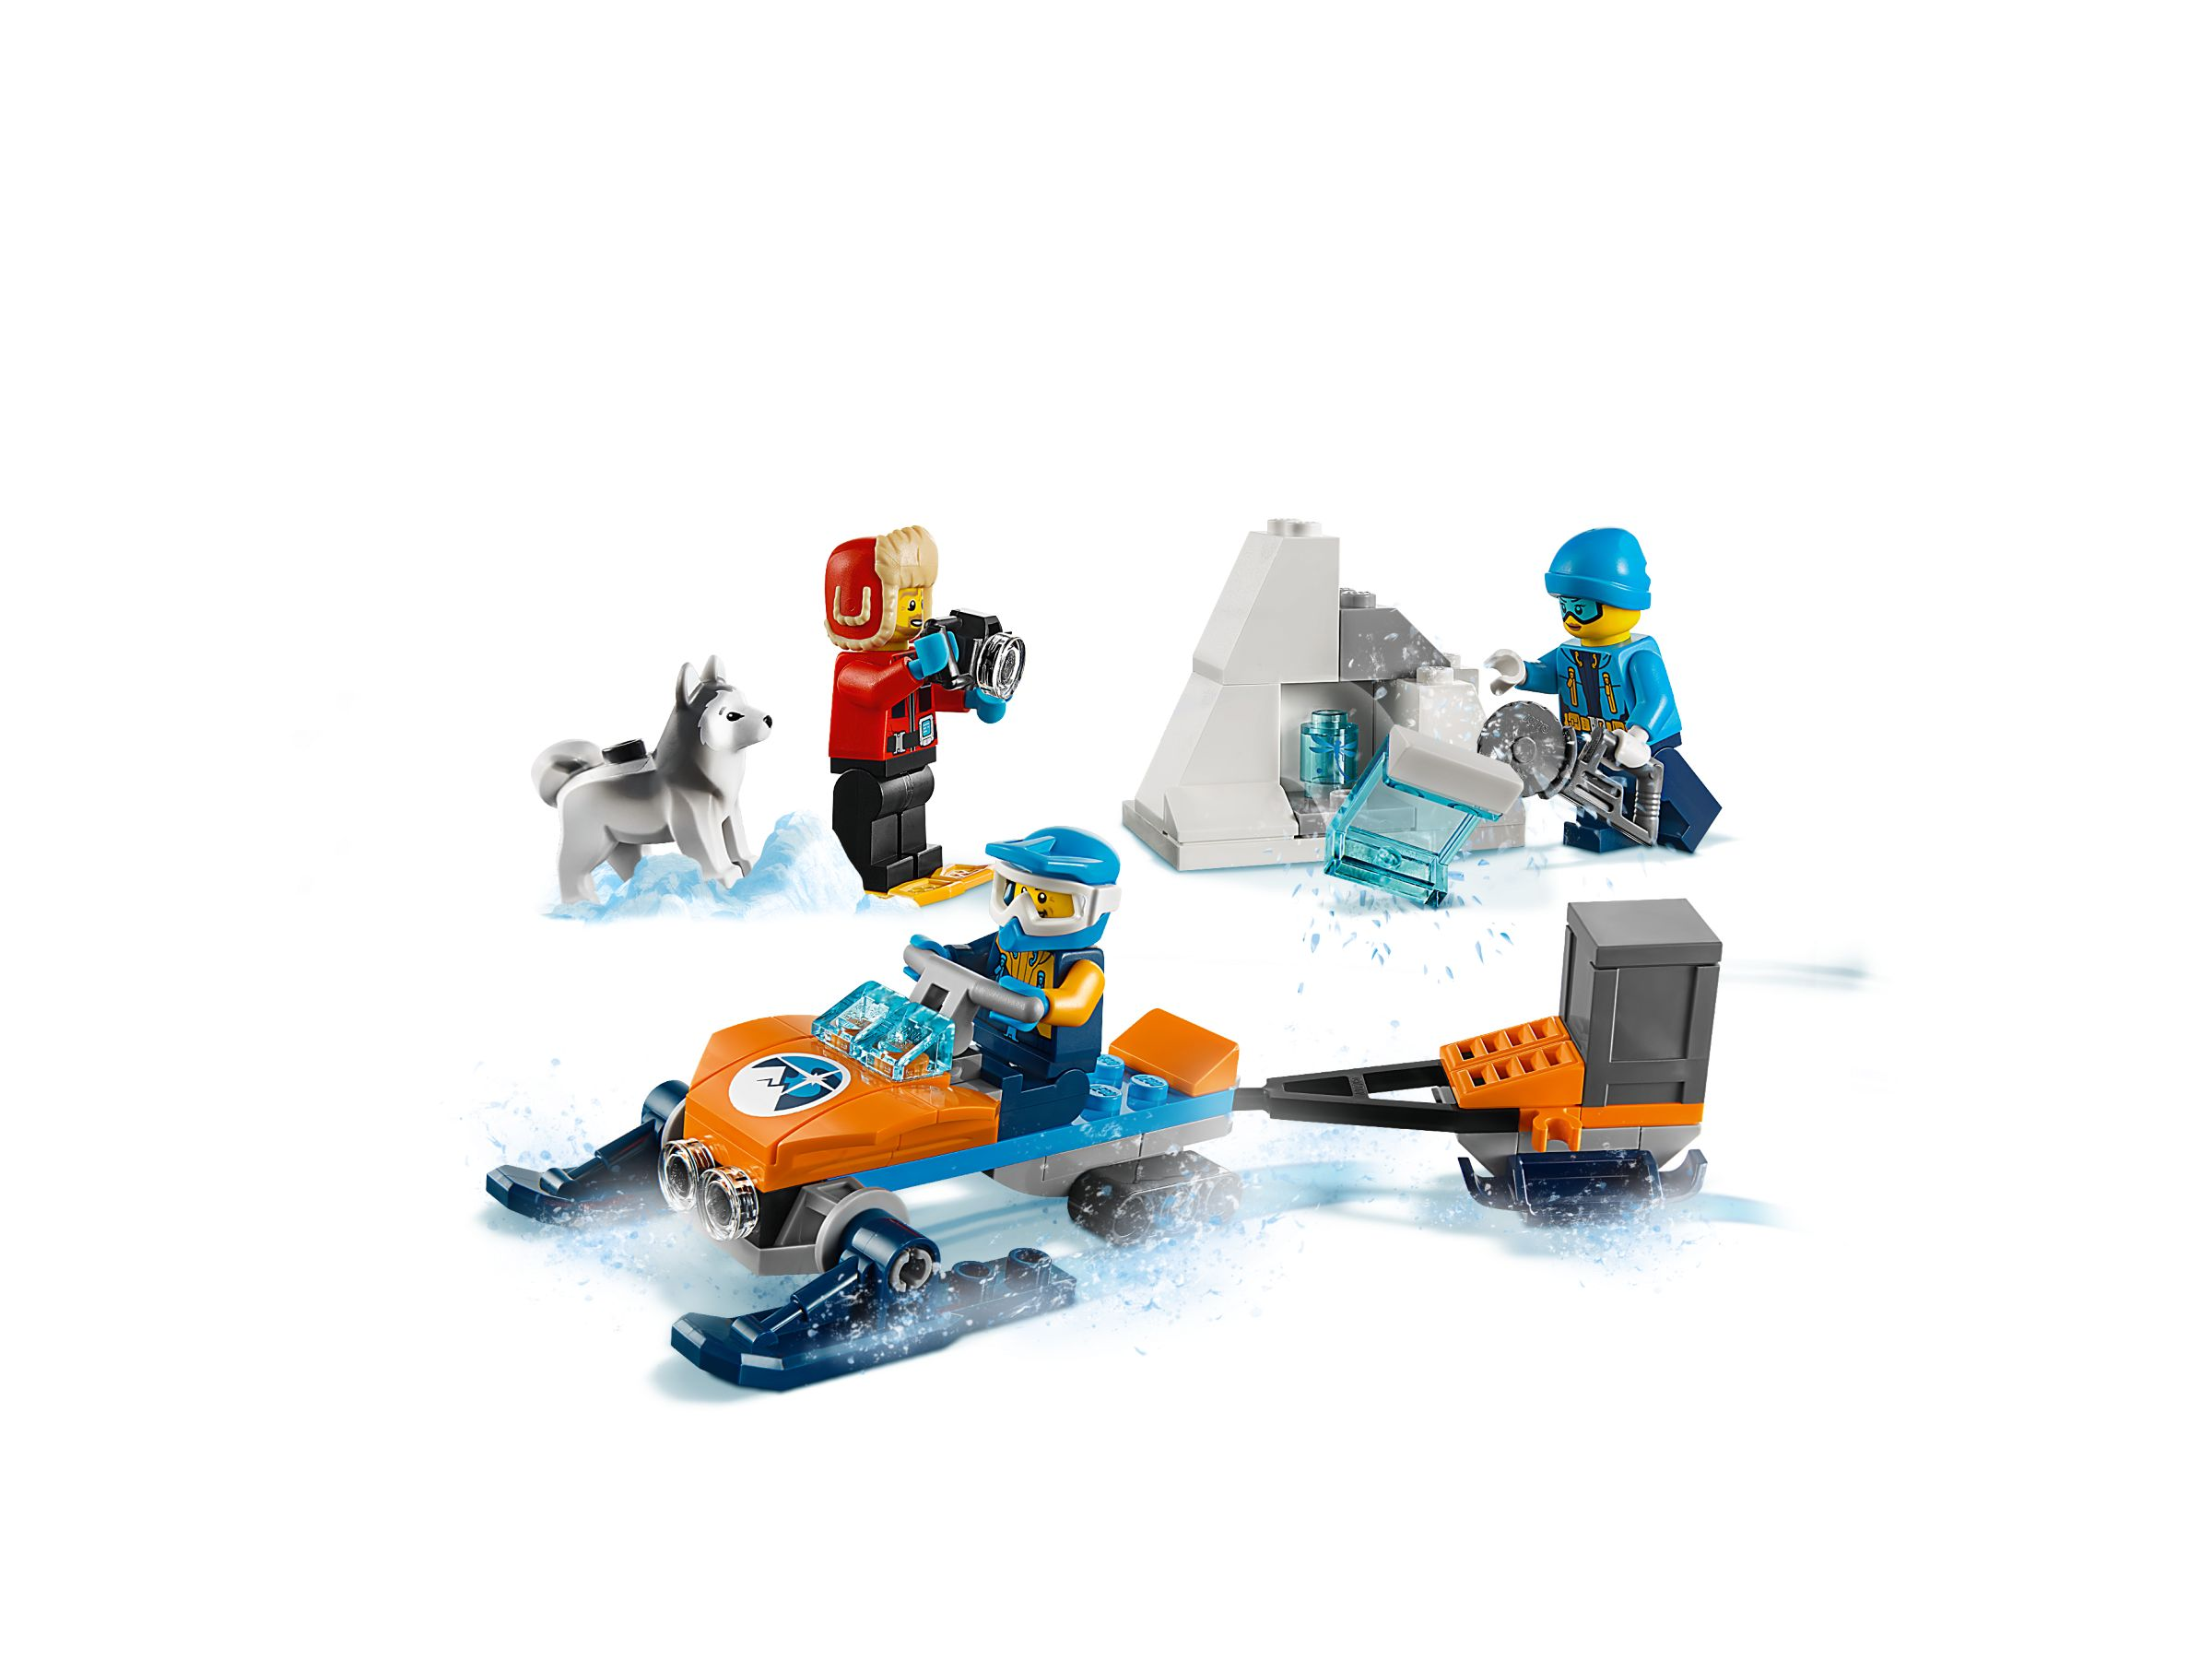 LEGO City 60191 Arktis-Expeditionsteam LEGO_60191_alt2.jpg